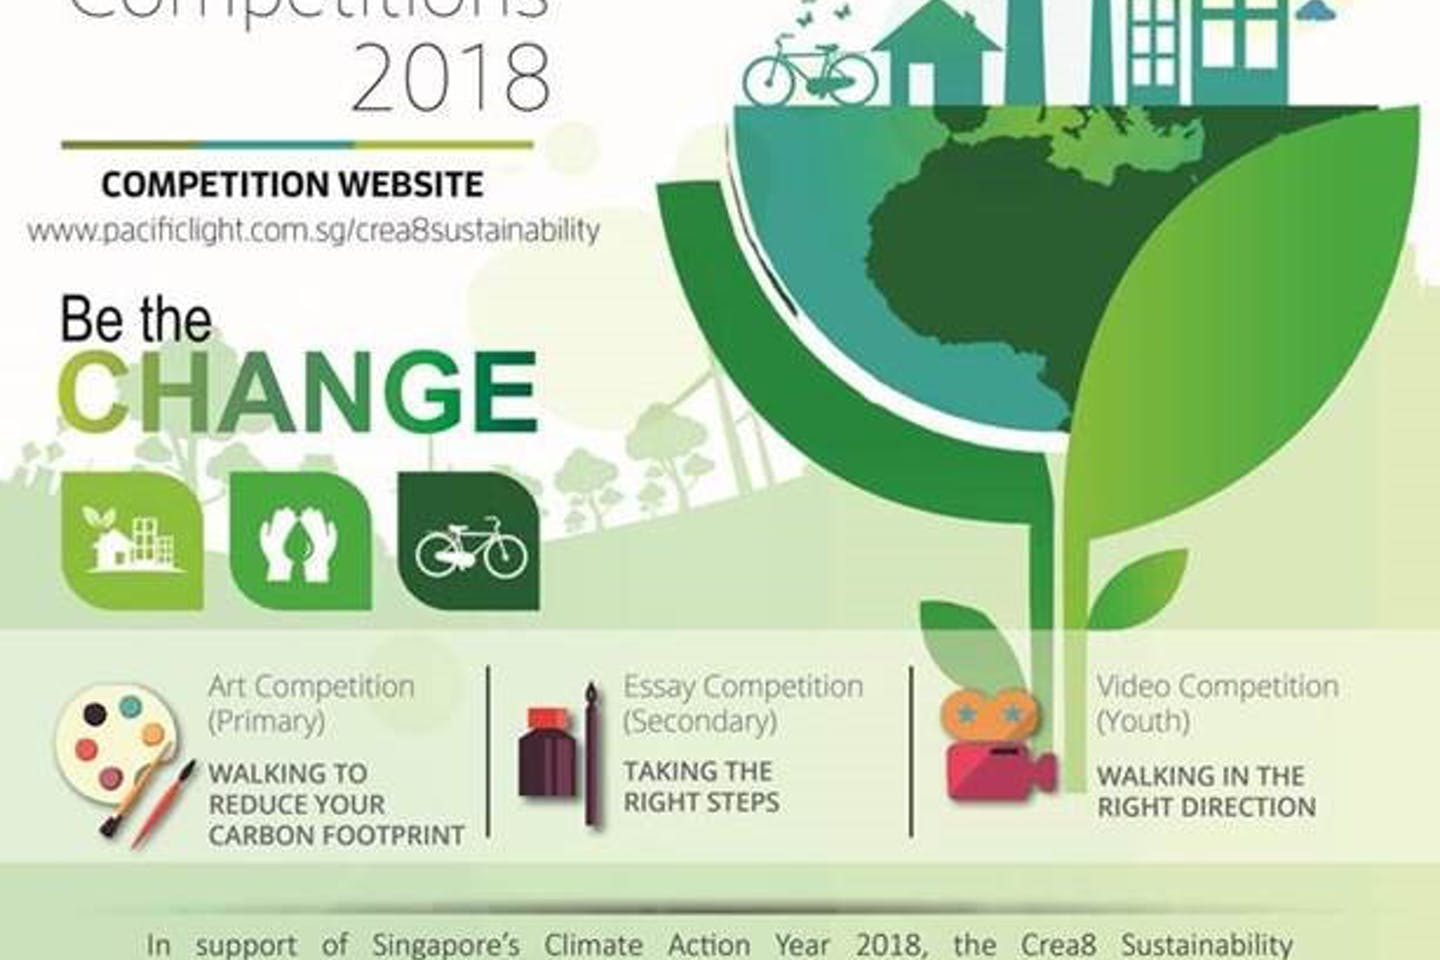 PacificLight provides wider opportunities for young Singaporeans to support sustainability efforts